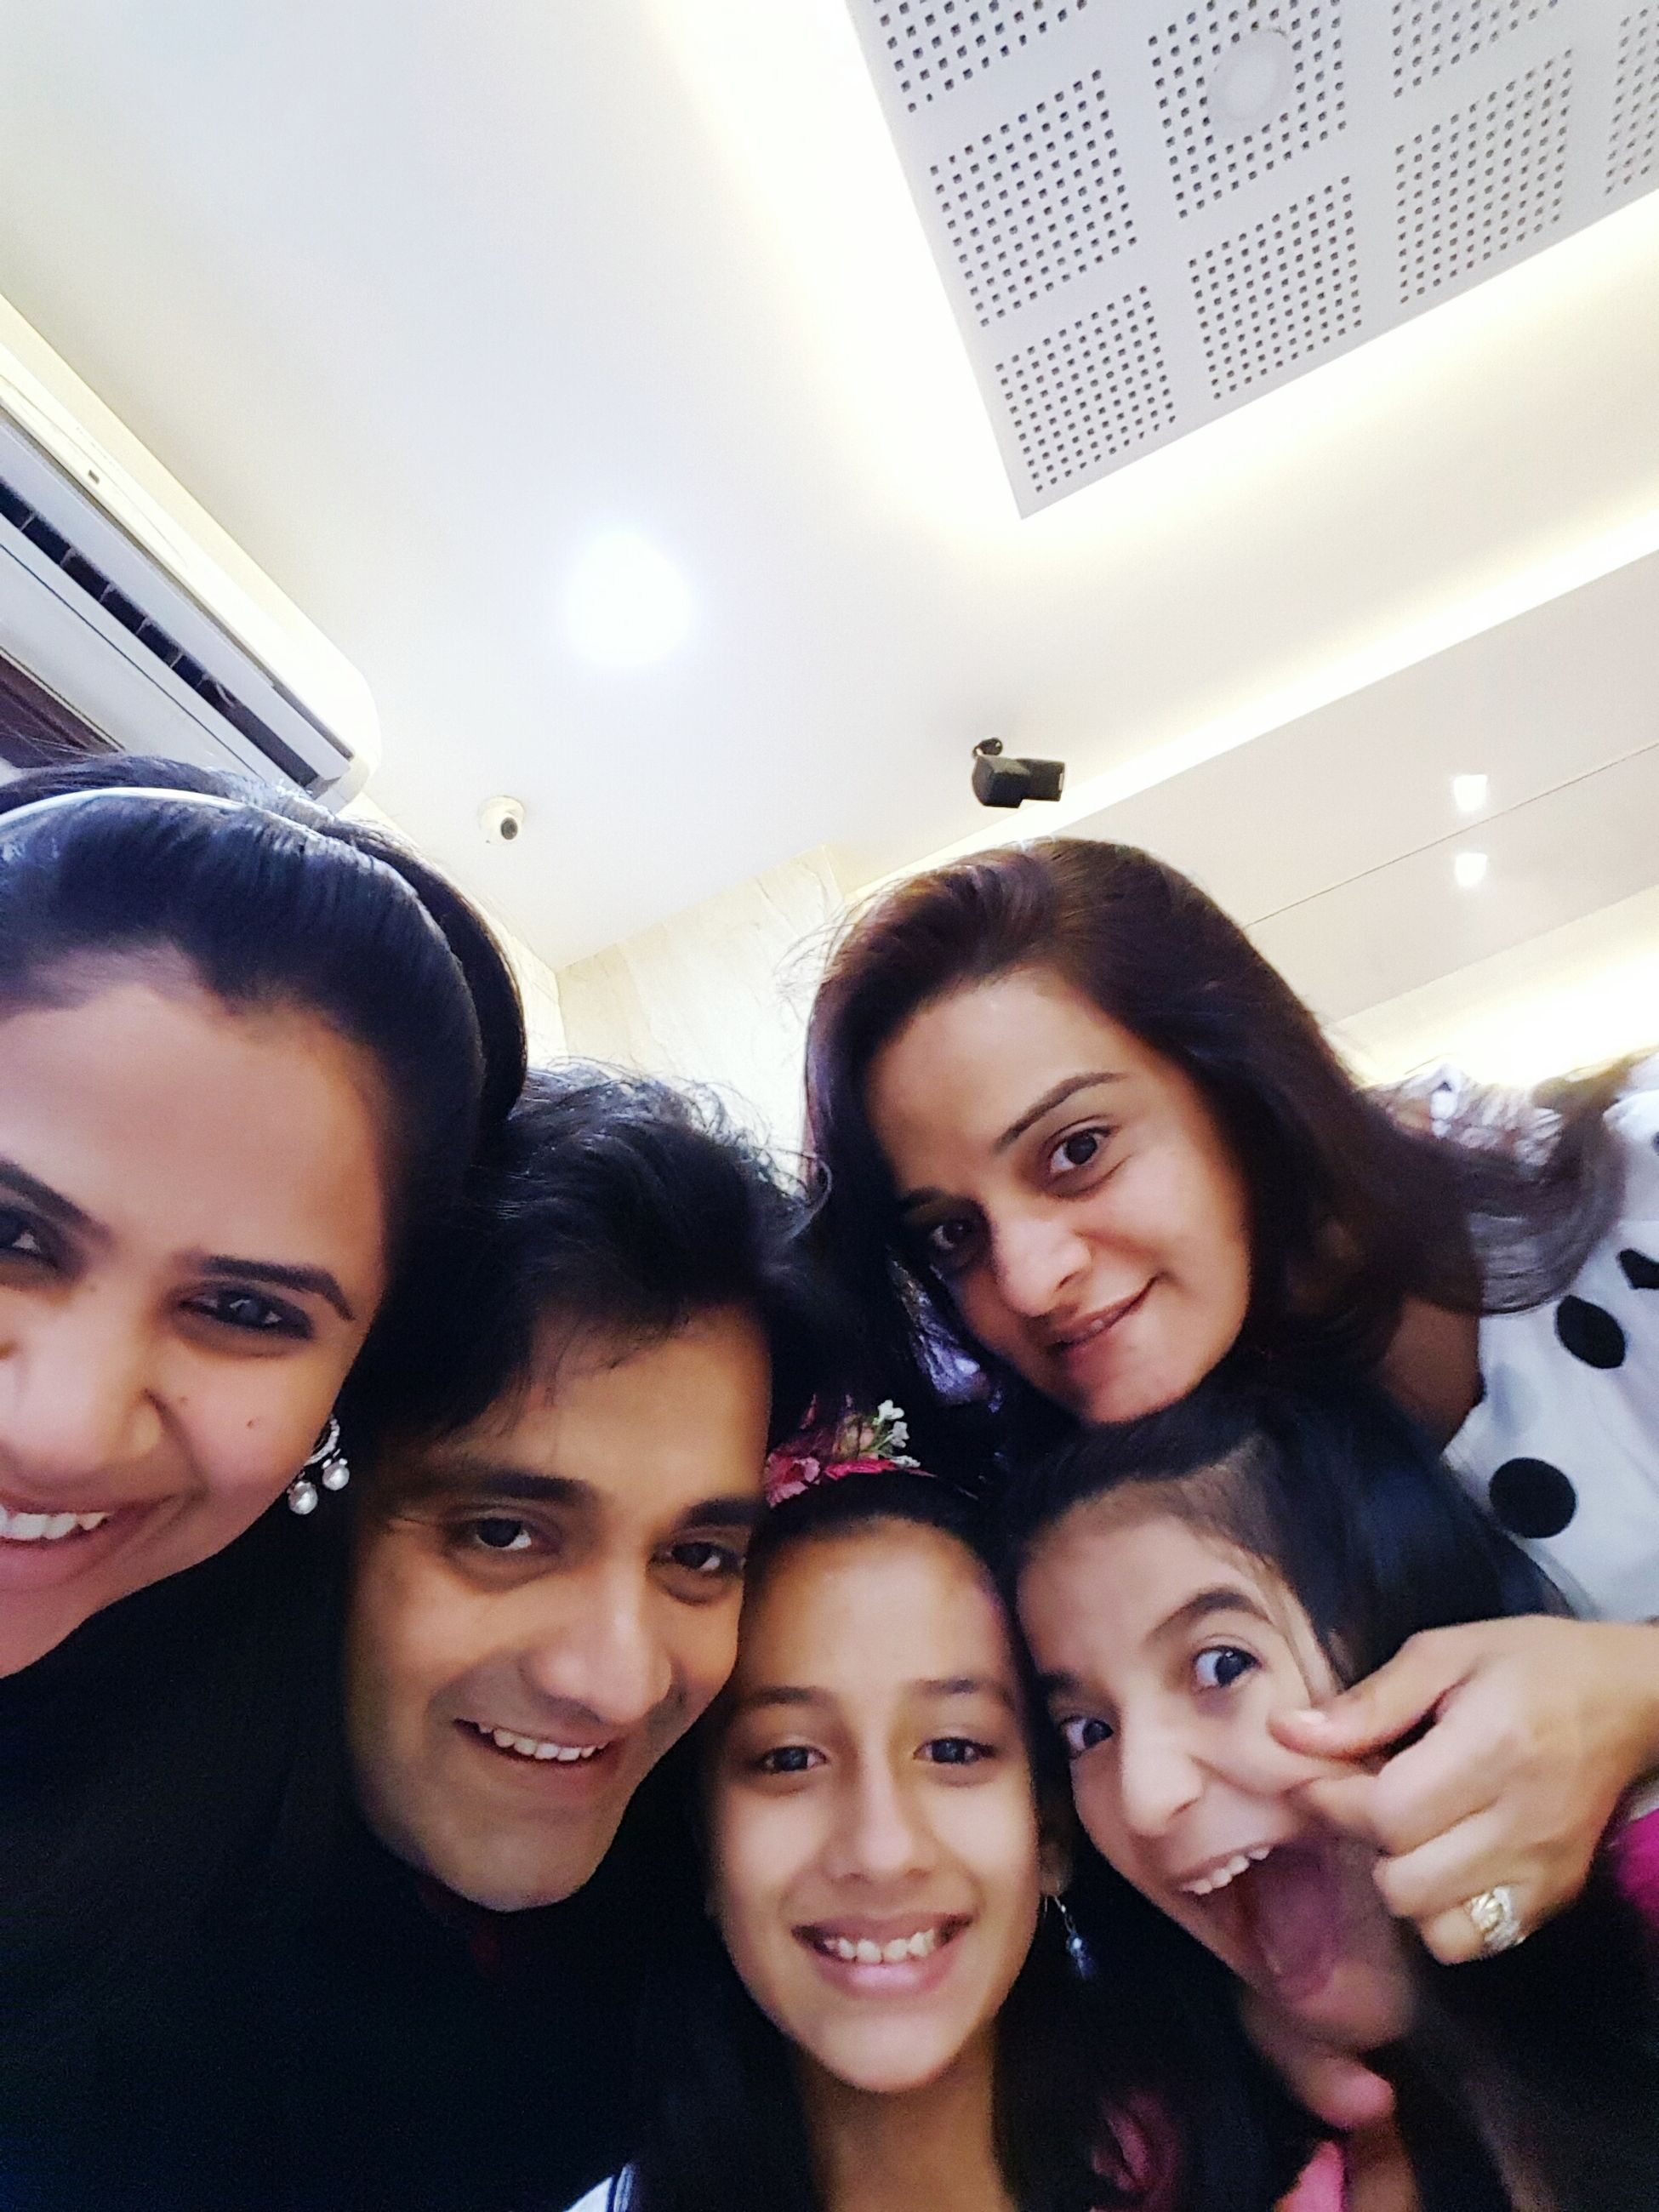 togetherness, lifestyles, leisure activity, indoors, bonding, person, happiness, enjoyment, love, fun, smiling, portrait, family, childhood, looking at camera, young women, young adult, friendship